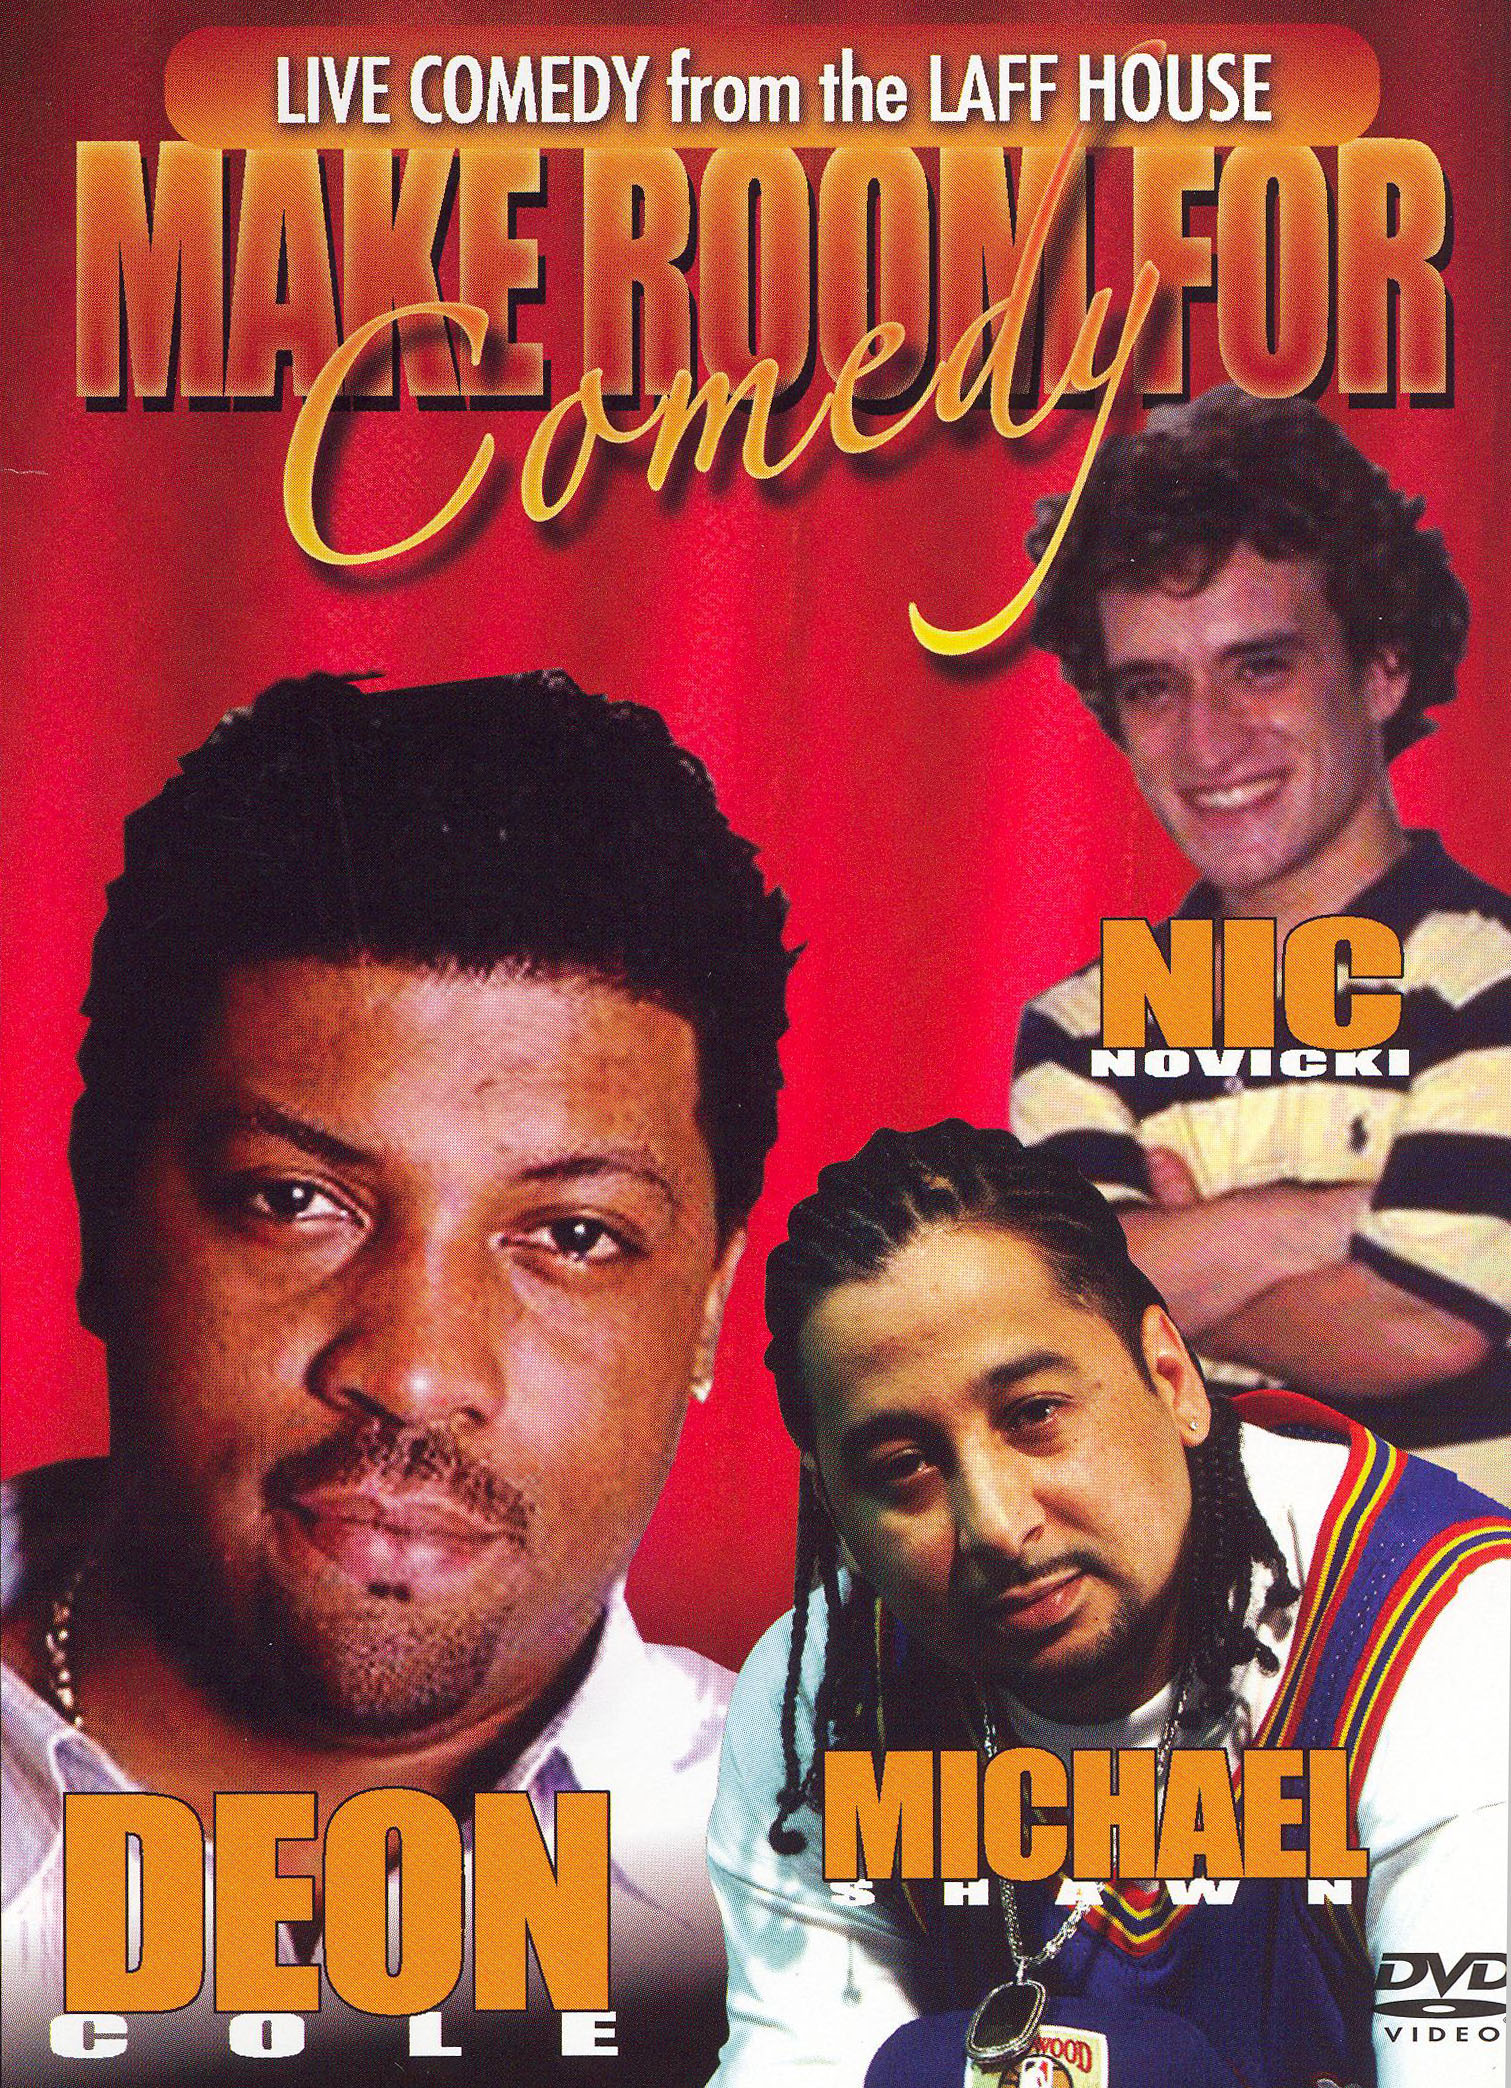 Live Comedy from the Laff House: Make Room for Comedy